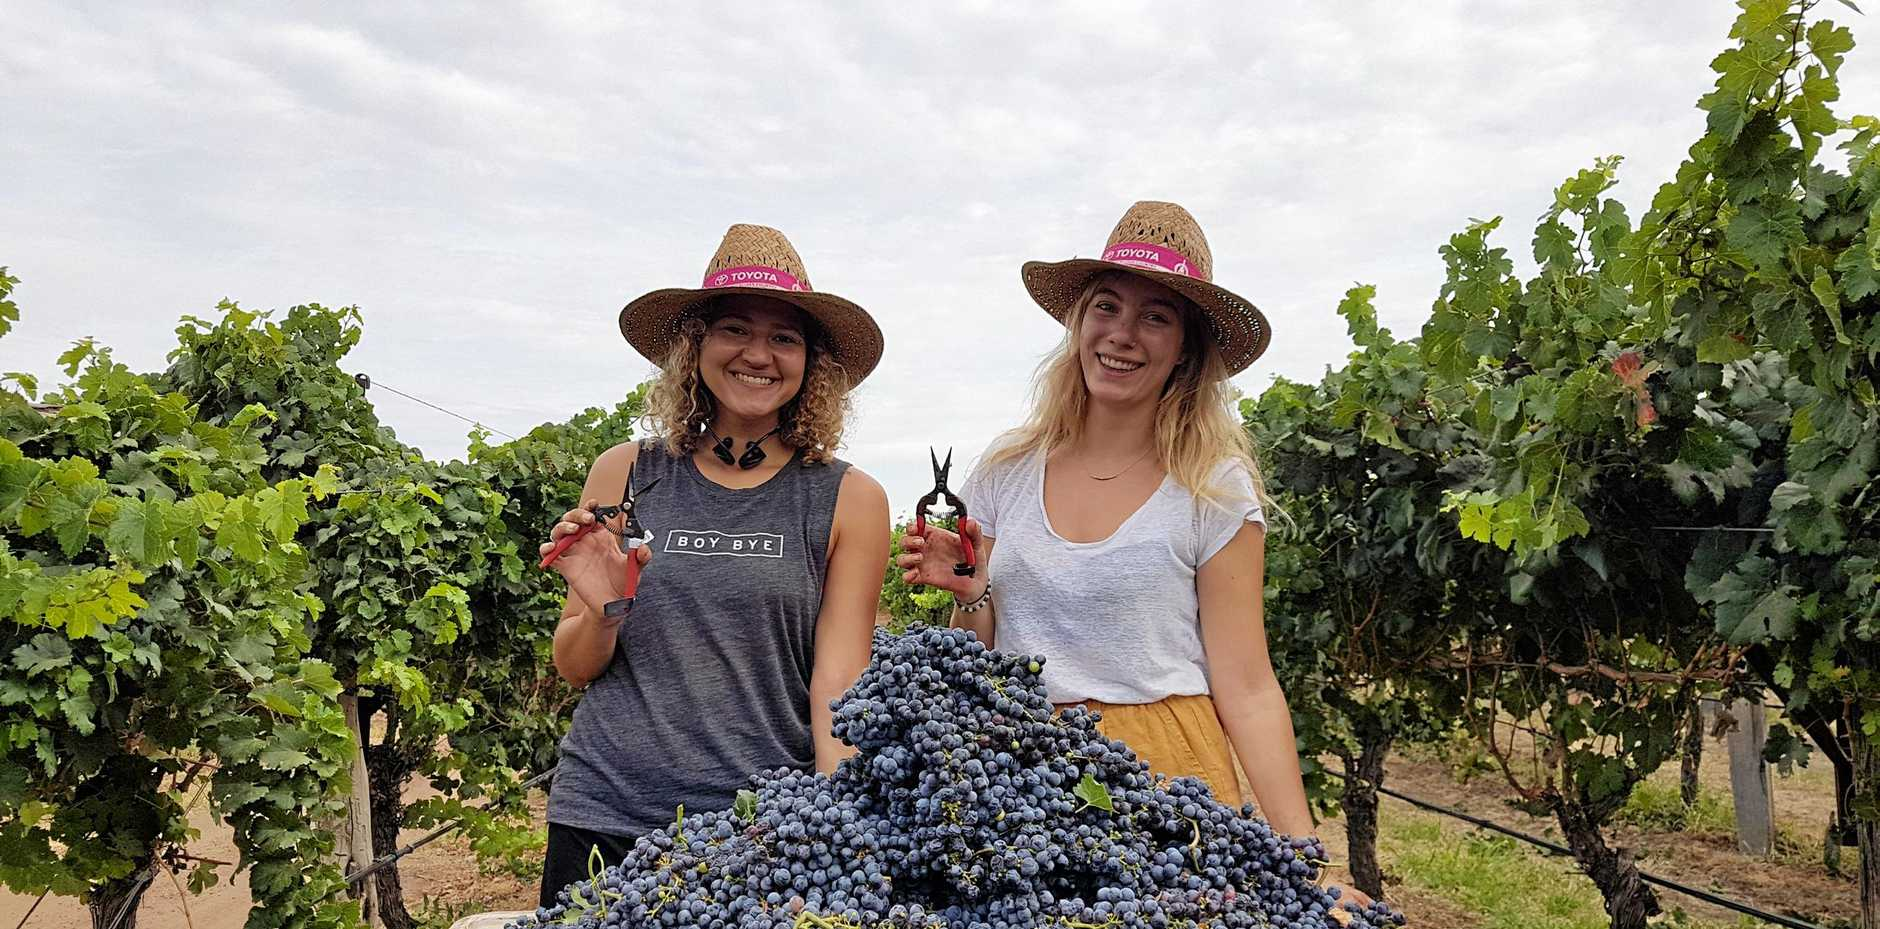 Backpackers Bridgette from New York and Joli from the Netherlands had a shot at grape picking.